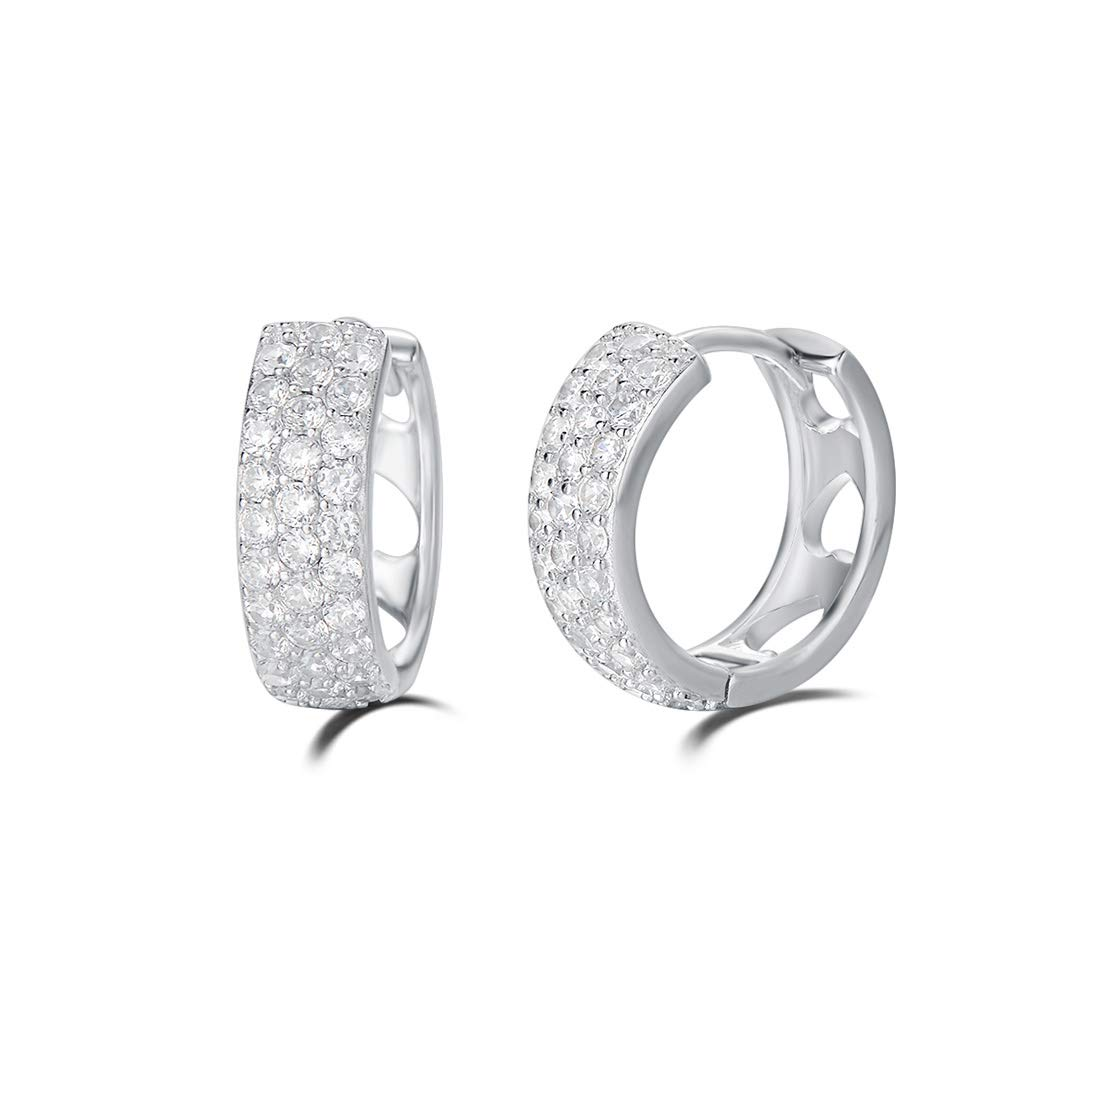 Carleen 14K White/Yellow Gold Plated Sterling Silver Pave Cubic Zirconia CZ Small/Tiny/Mini/Little Thick Huggie Cartilage Hoop Earrings For Women Girls, 15mm